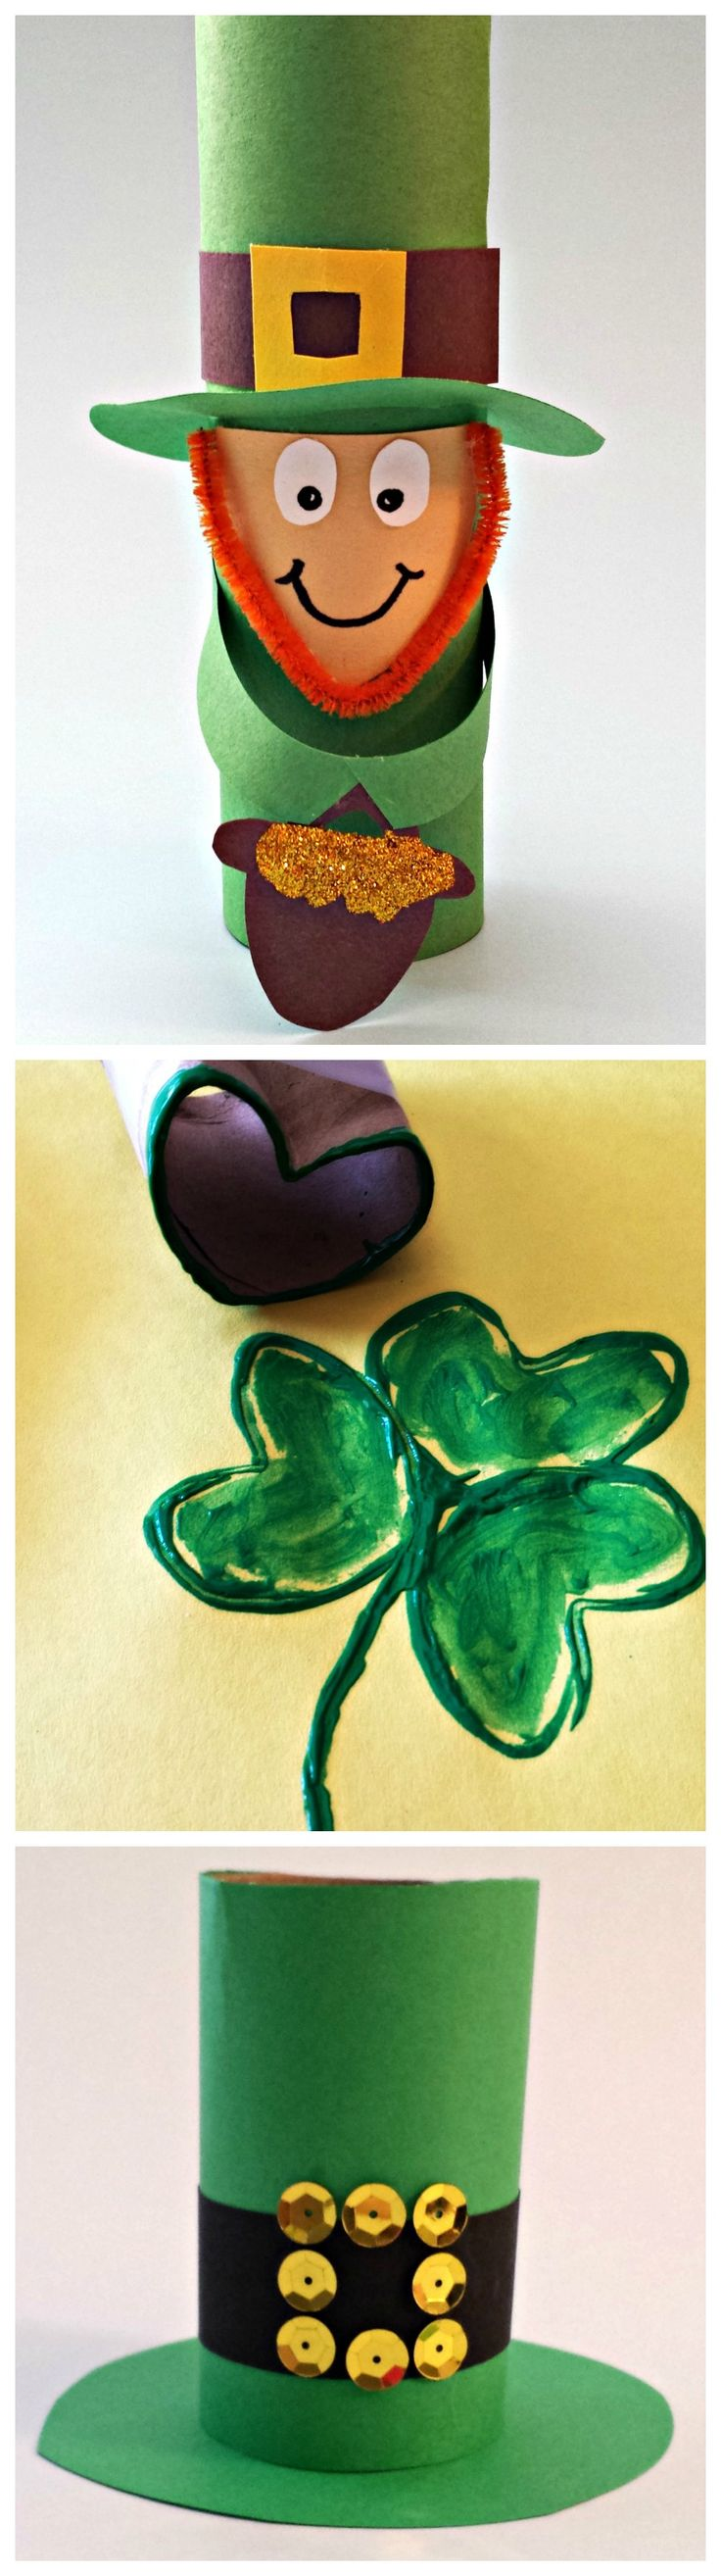 130 best toilet paper roll crafts for kids images on for Toilet paper art ideas